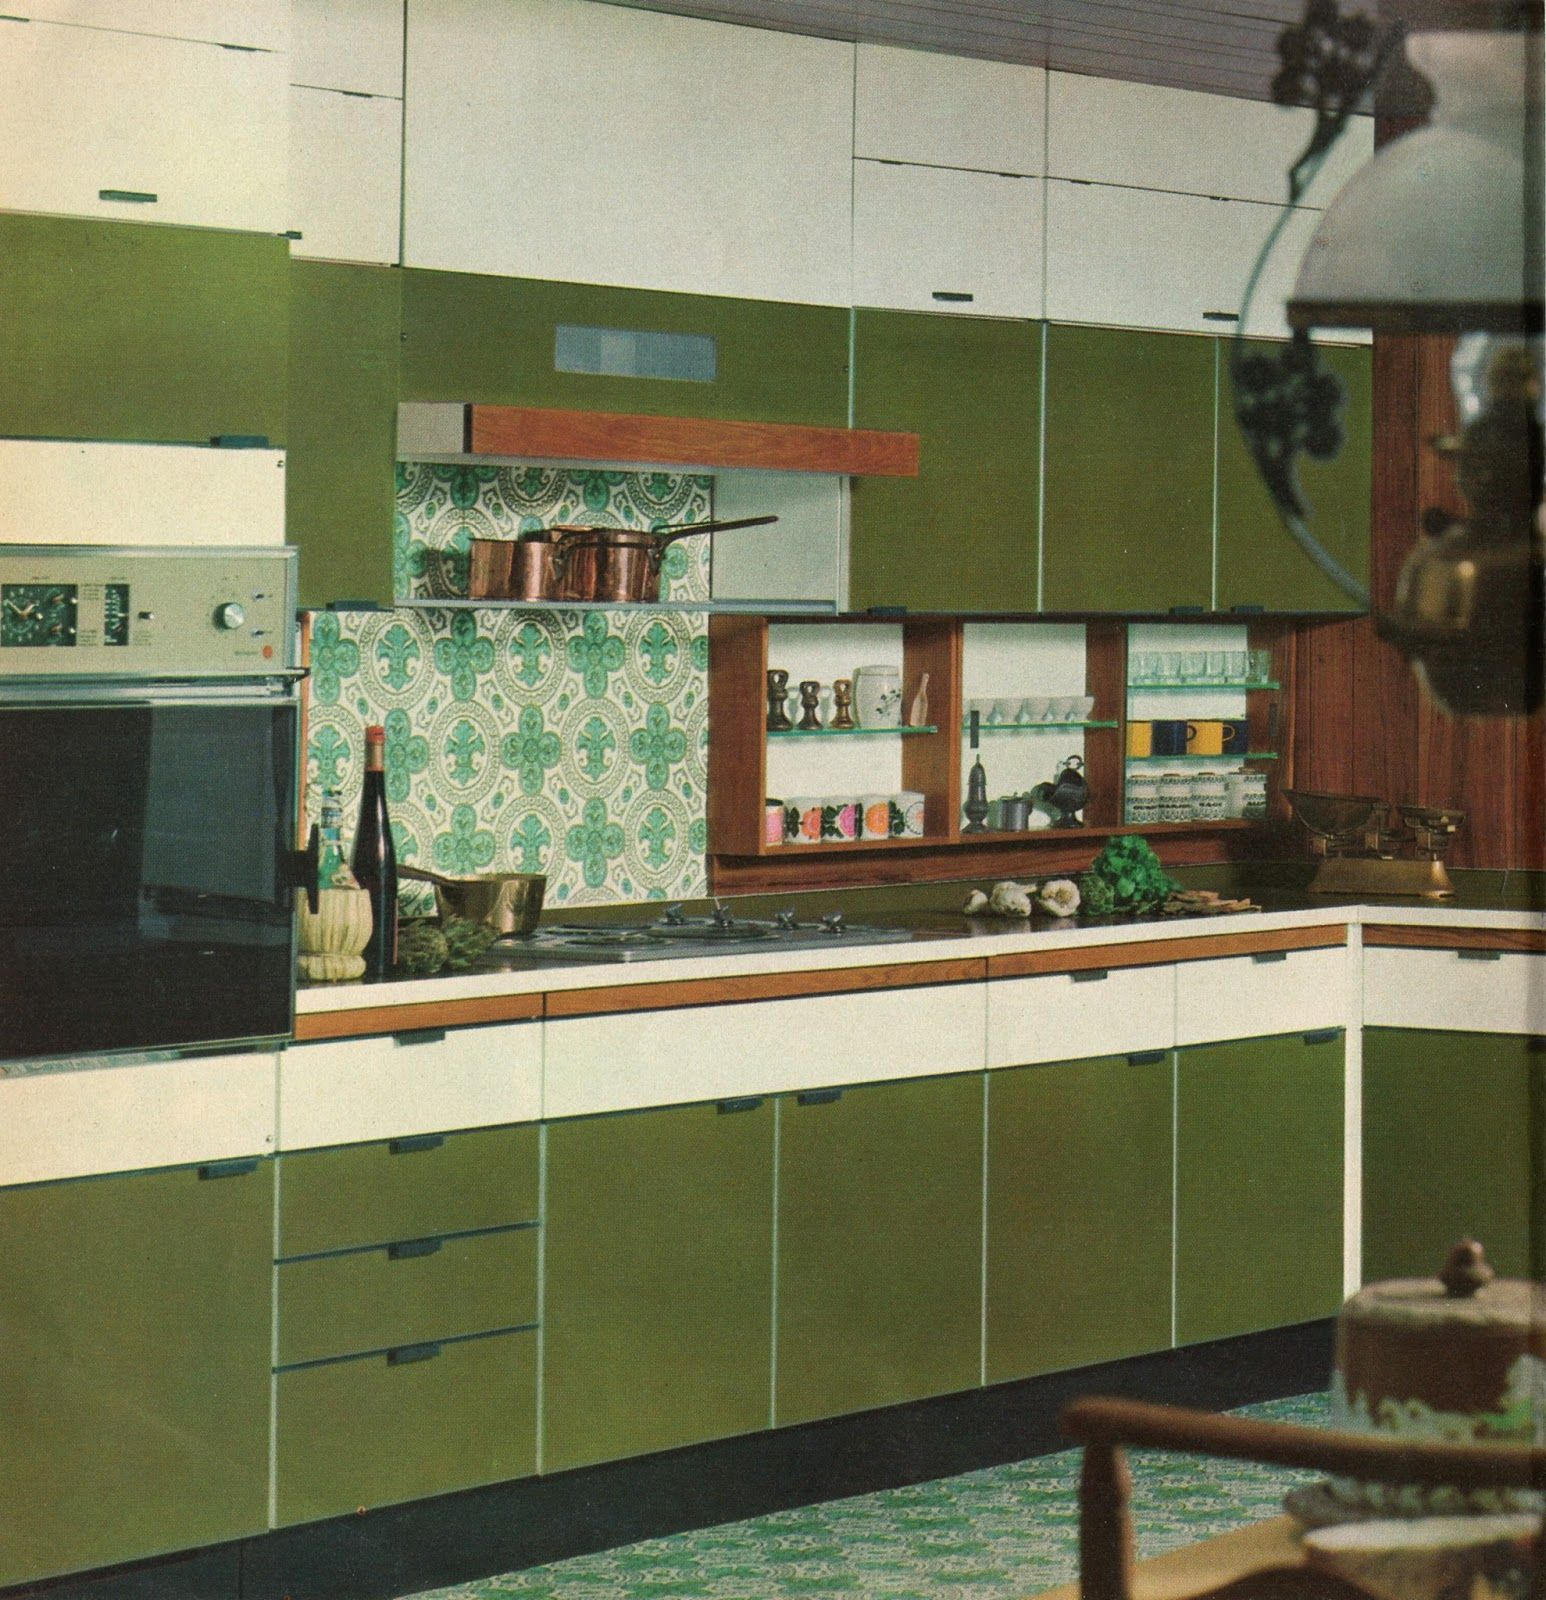 Cuisine Vintage Formica Pin By Tom Harle On The Modern Home Pinterest Kitchen Objects